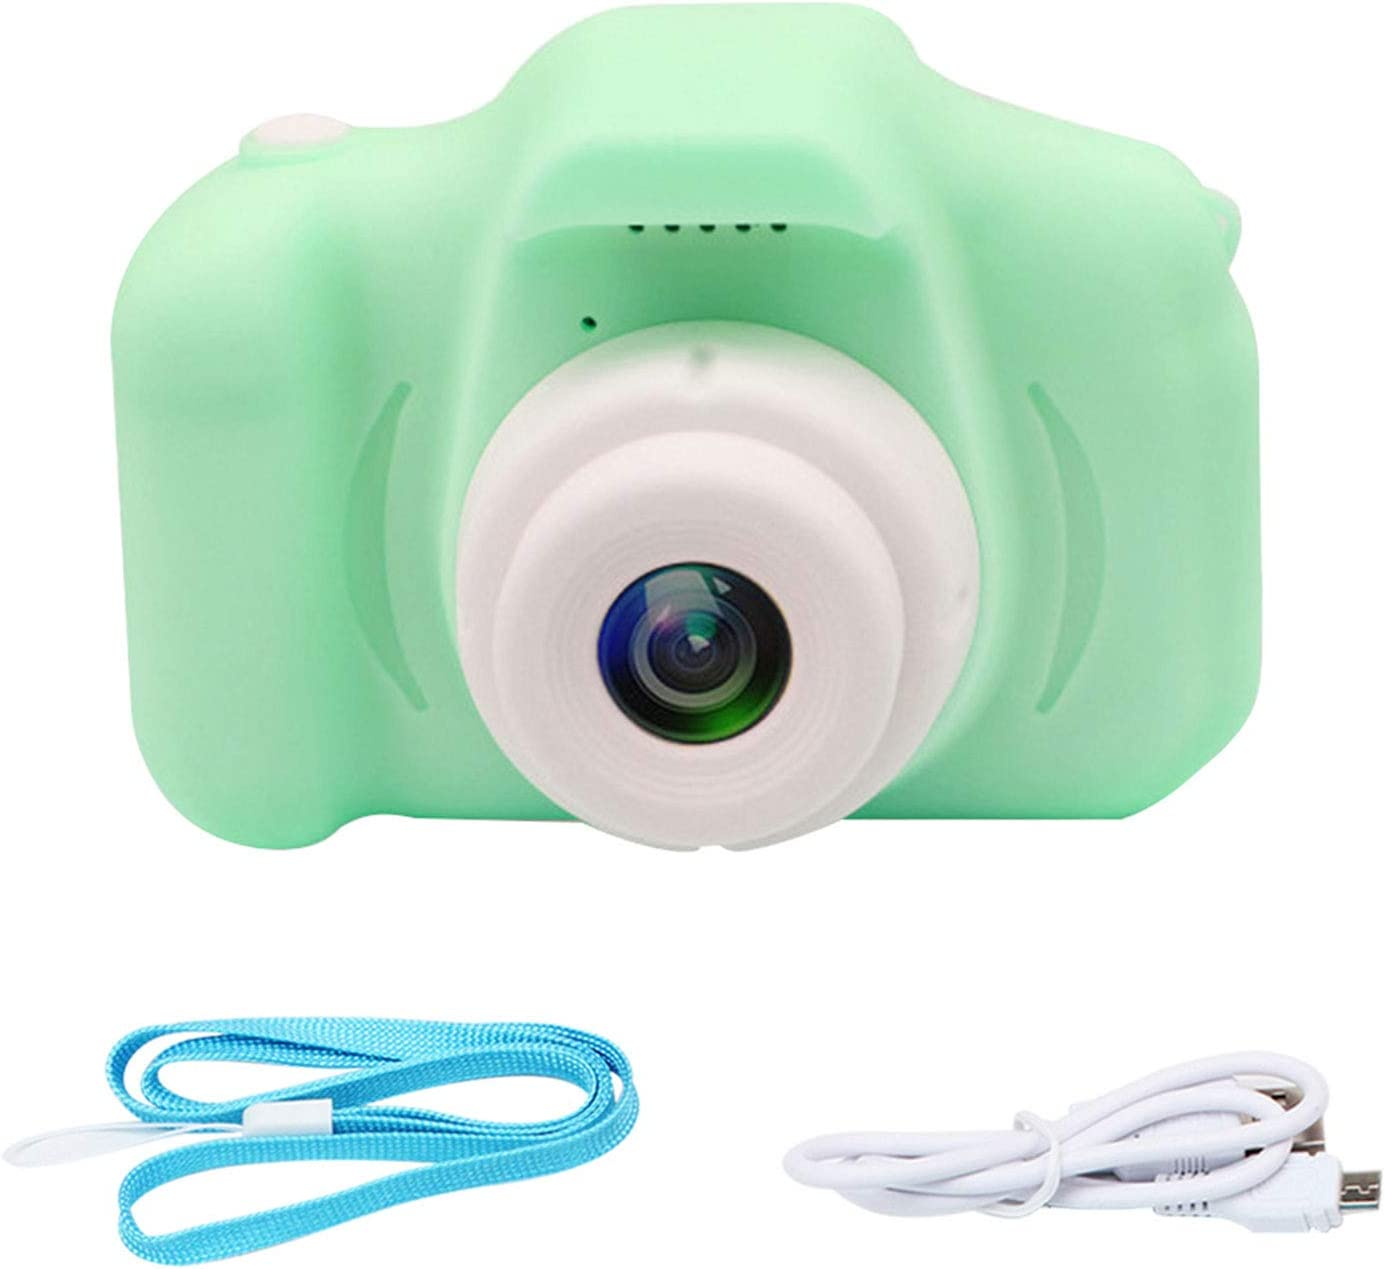 Ajcoflt Kids Camera,2.0 Inch 1080P Mini Rechargeable Digital Camera for Children Photo Recording Multifunction Camcorders for Girls Children Toddler 3-10 Year Old Birthday Christmas Festival Gift